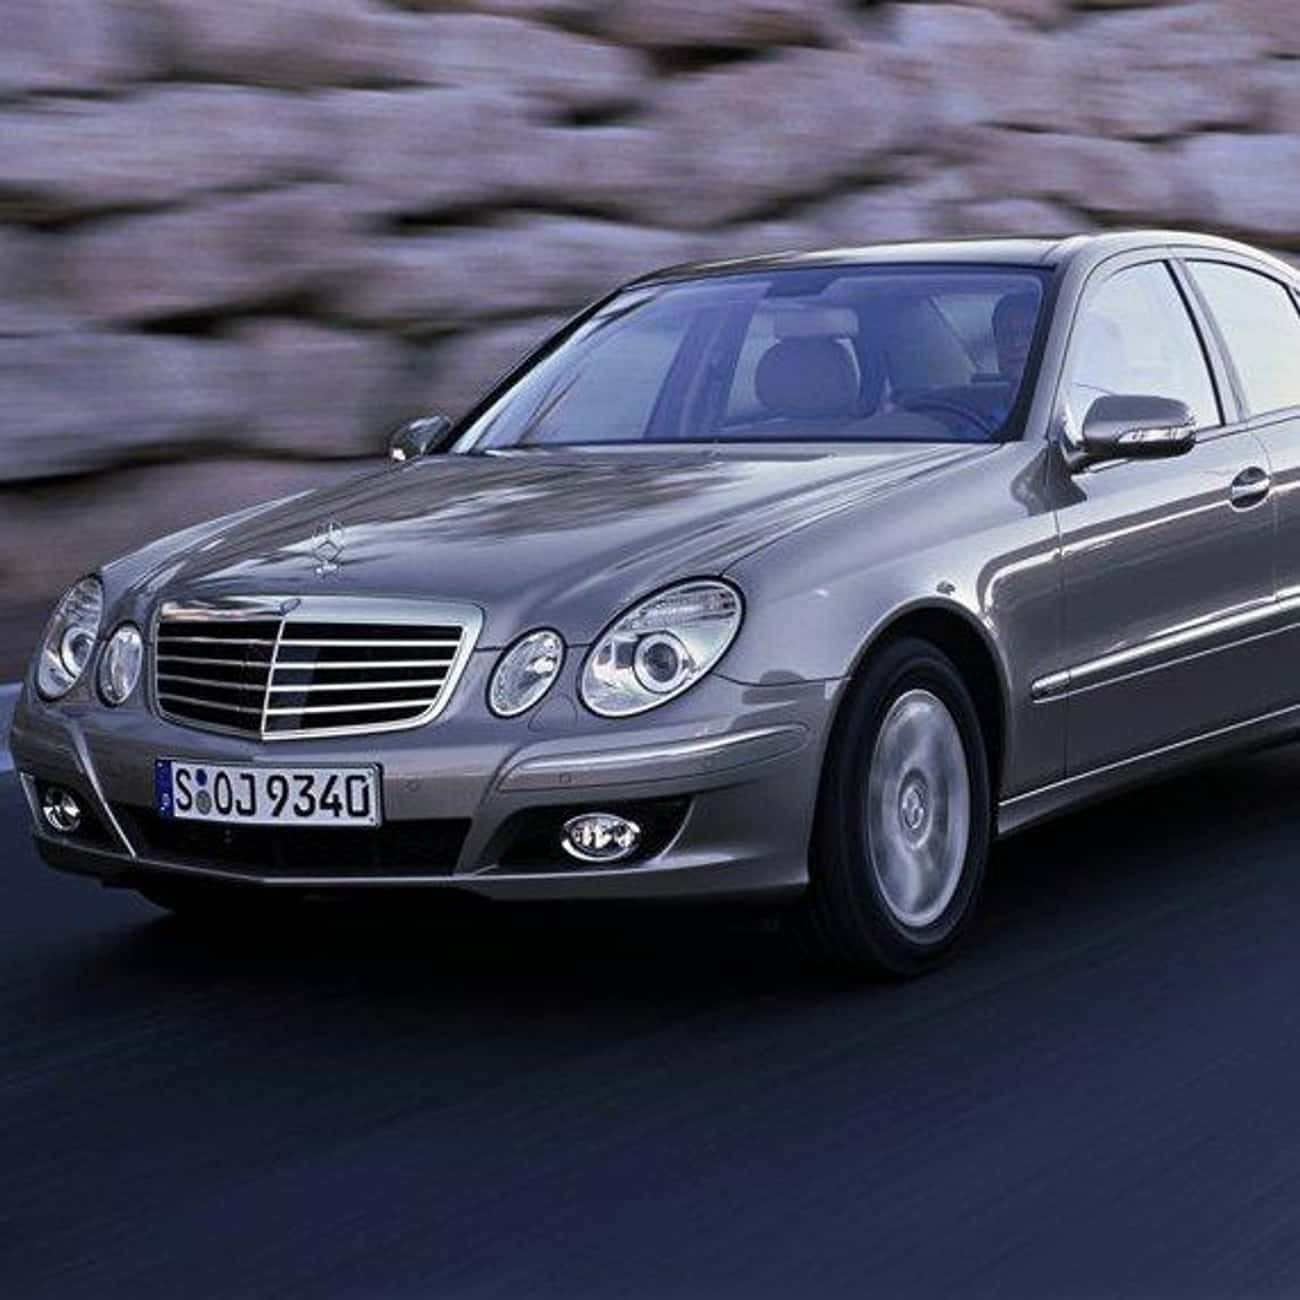 2006 Mercedes-Benz E-Class Wag is listed (or ranked) 3 on the list The Best Mercedes-Benz E-Classes of All Time